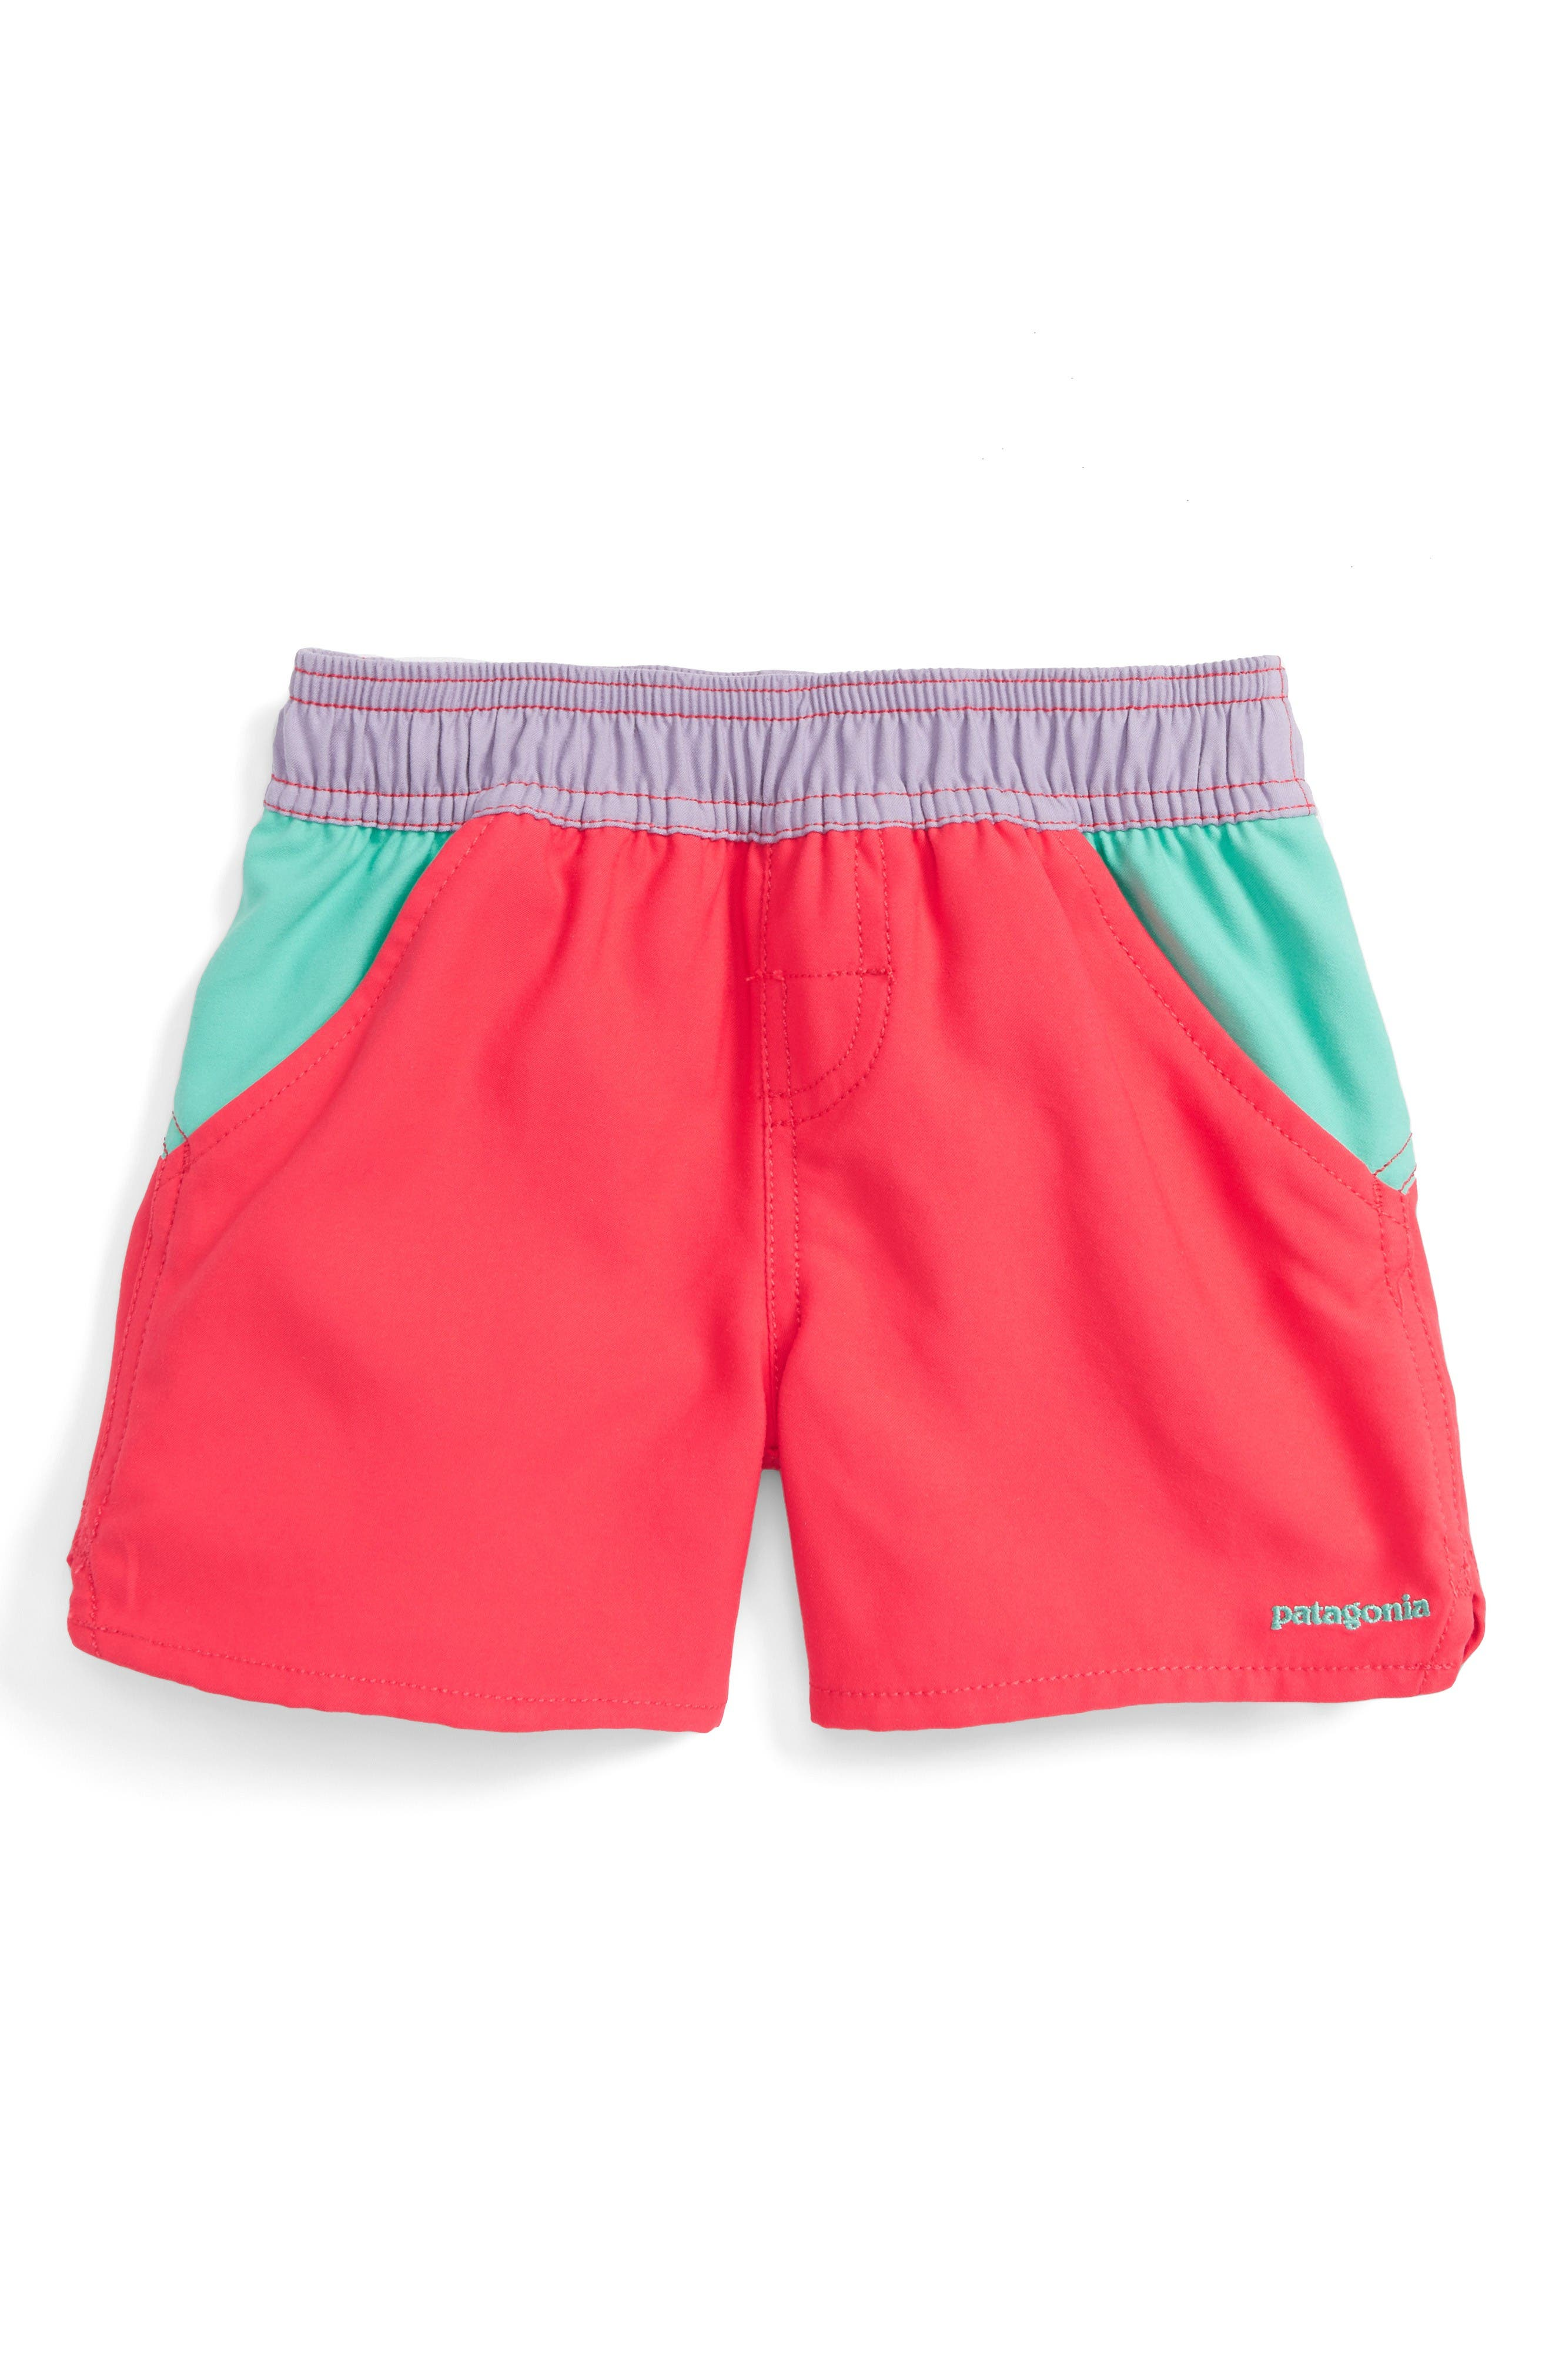 PATAGONIA 'Forries Shorey' Board Shorts